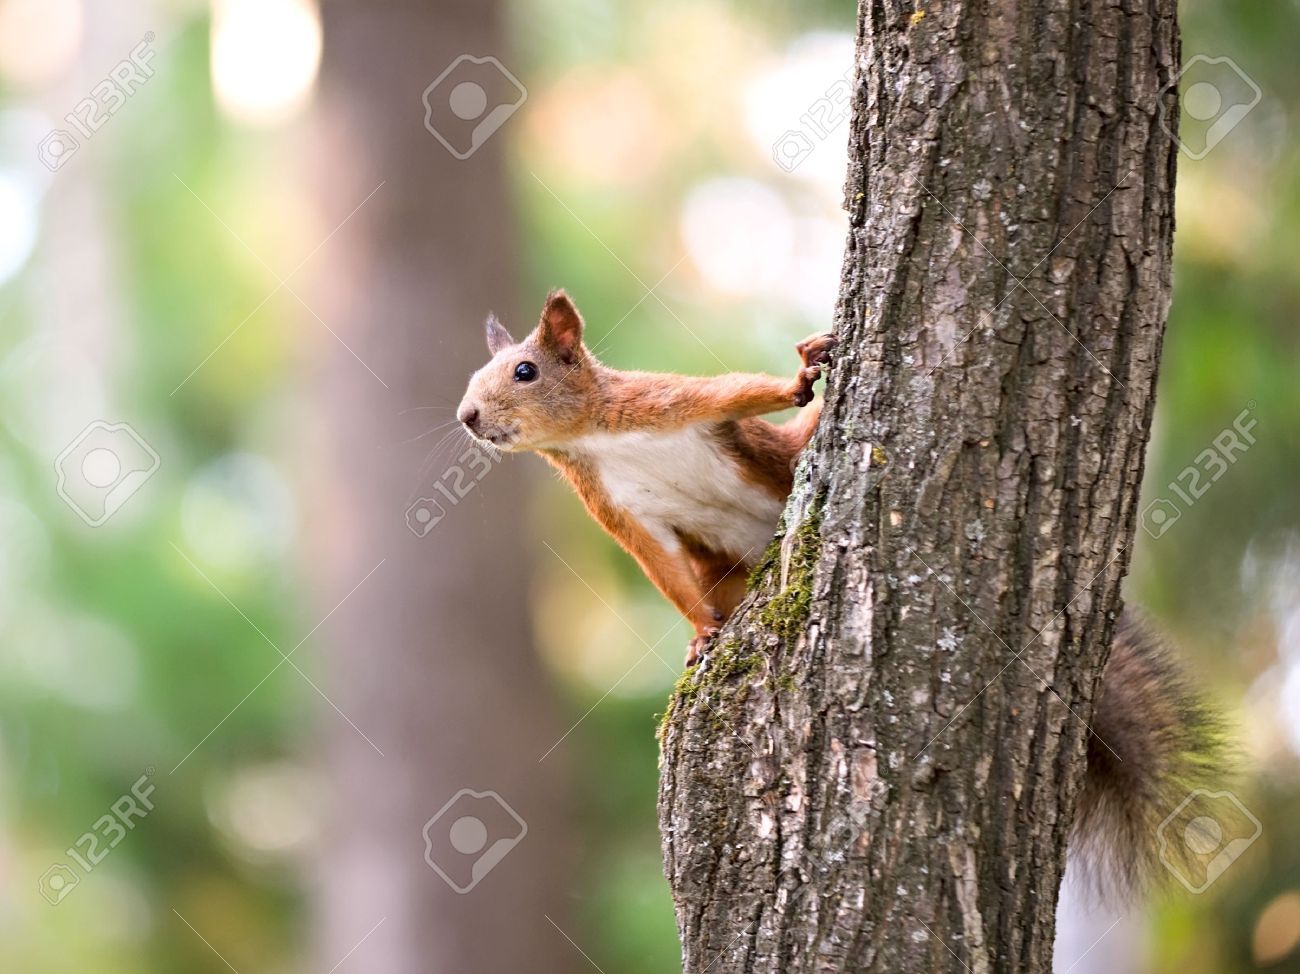 Red squirrel sitting on the tree - 7995636